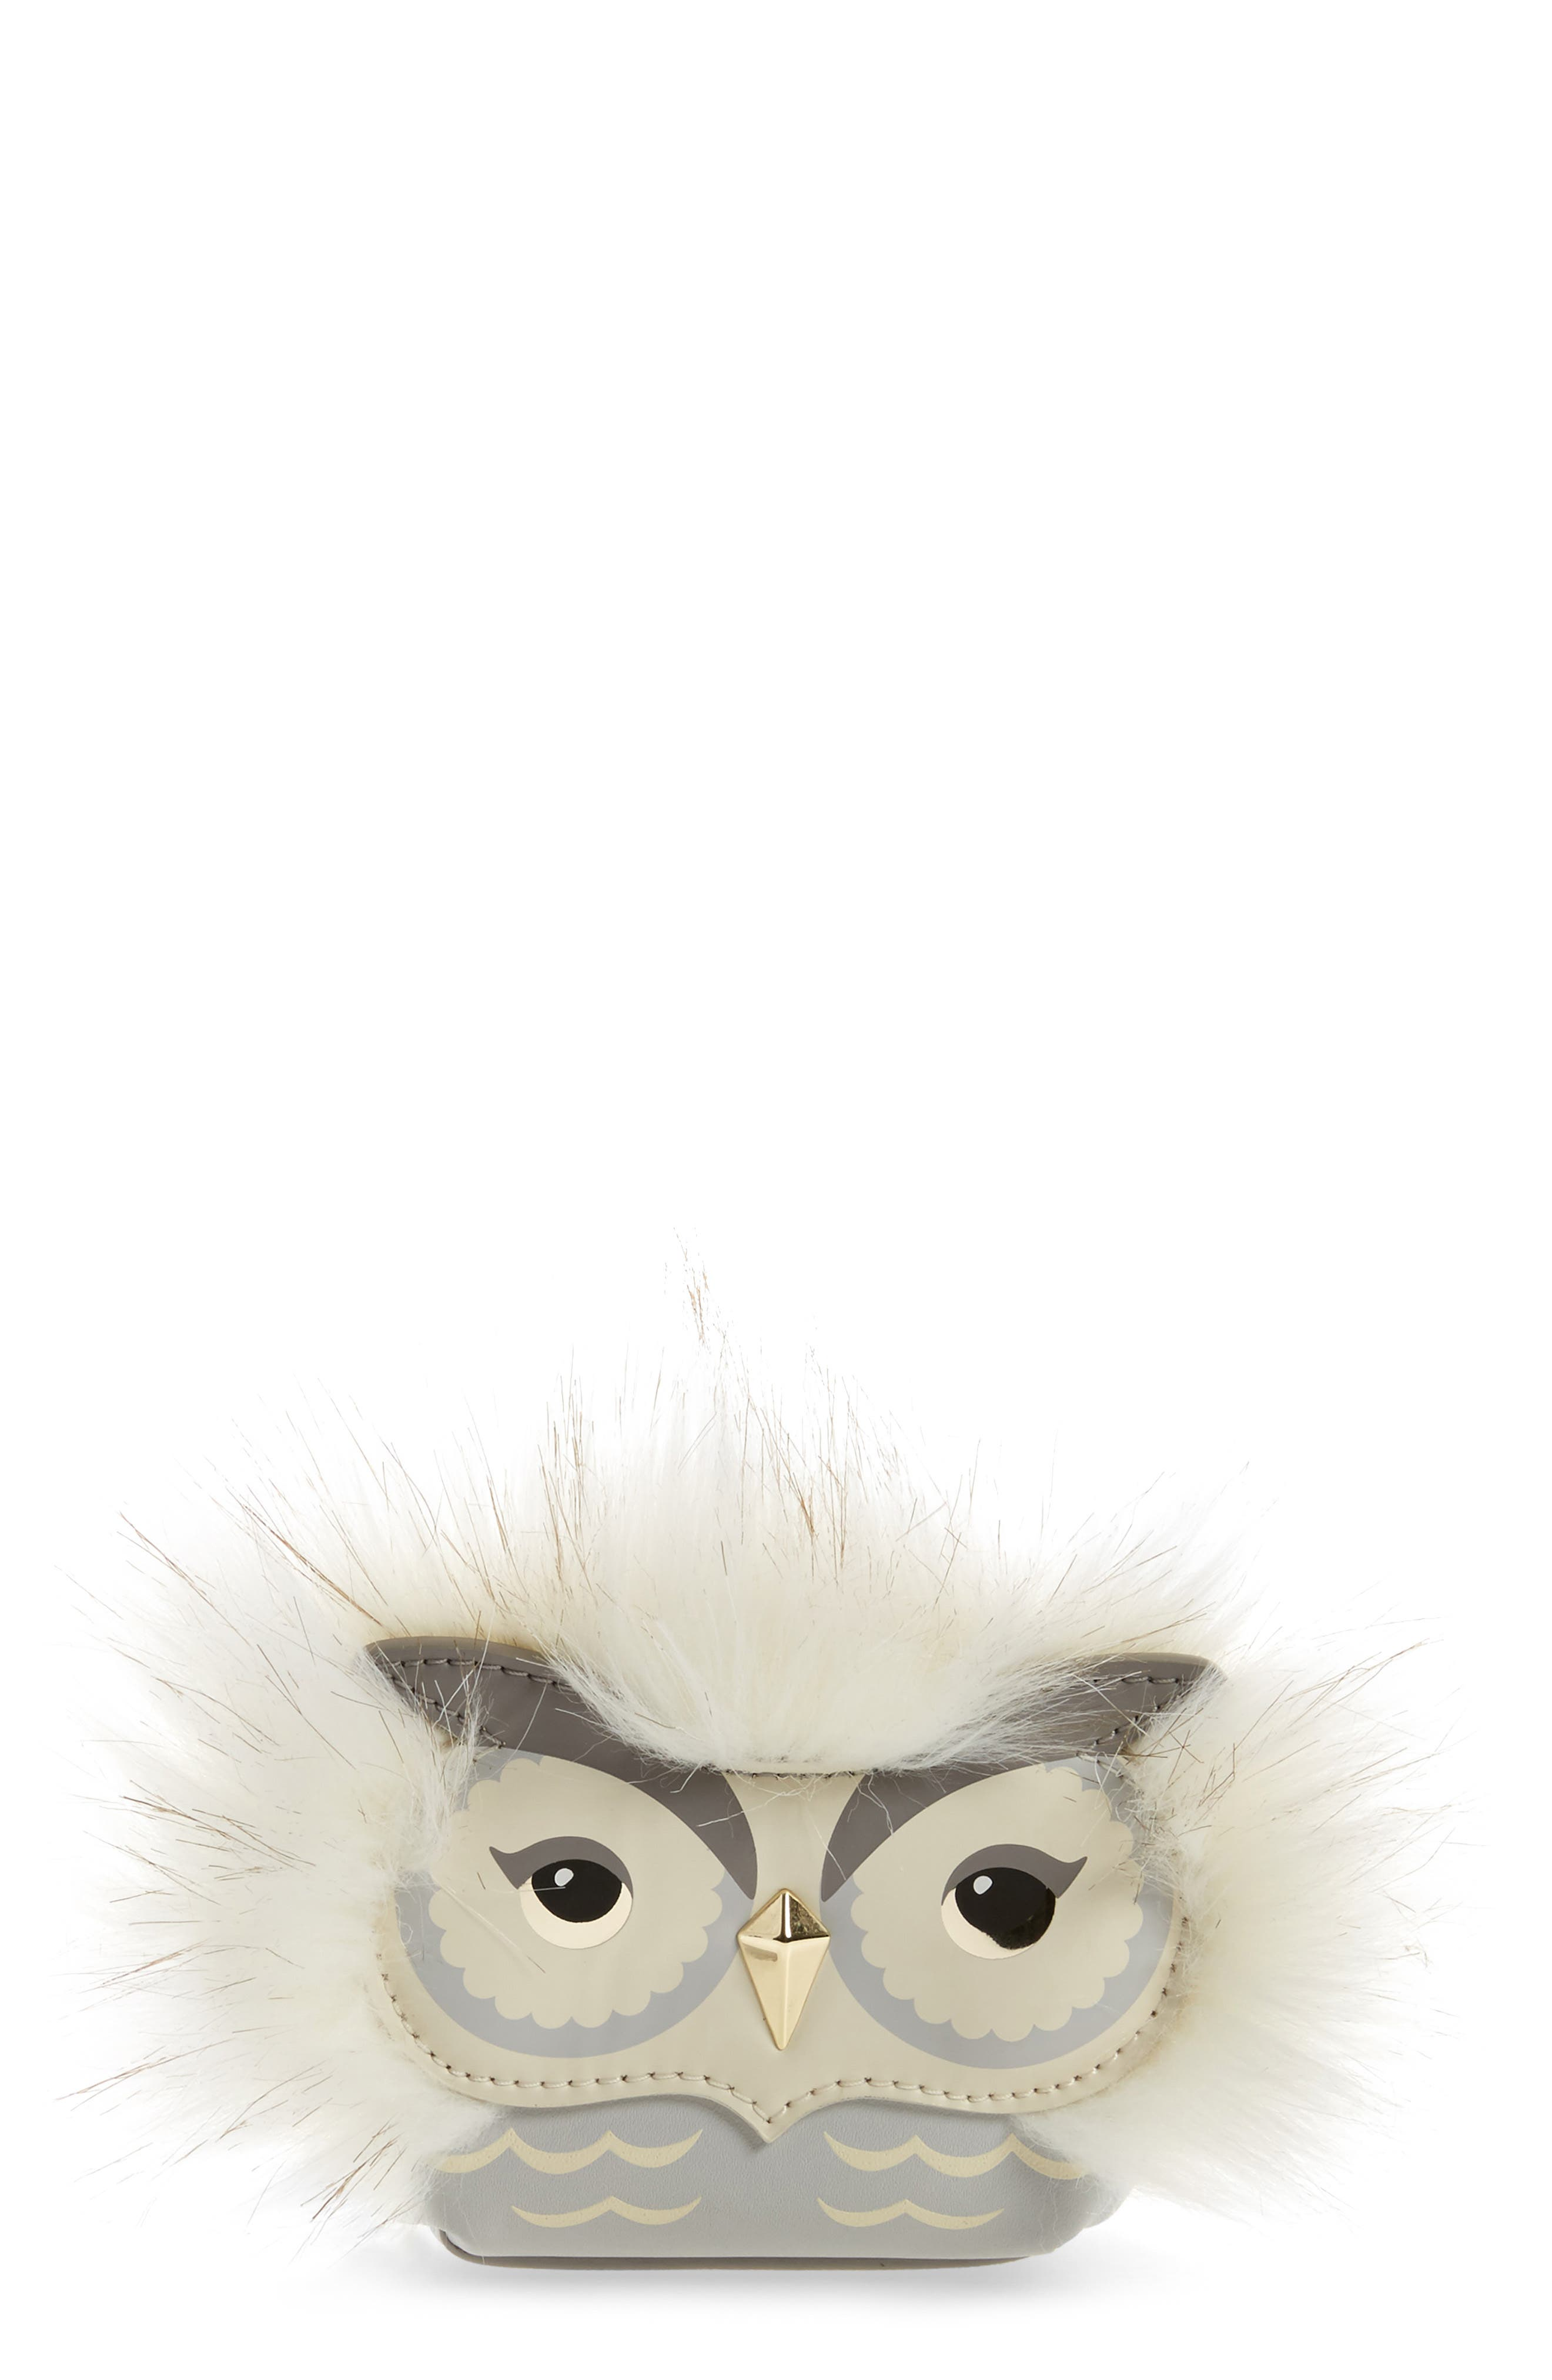 Main Image - kate spade new york starbright owl faux fur & leather coin case/bag charm